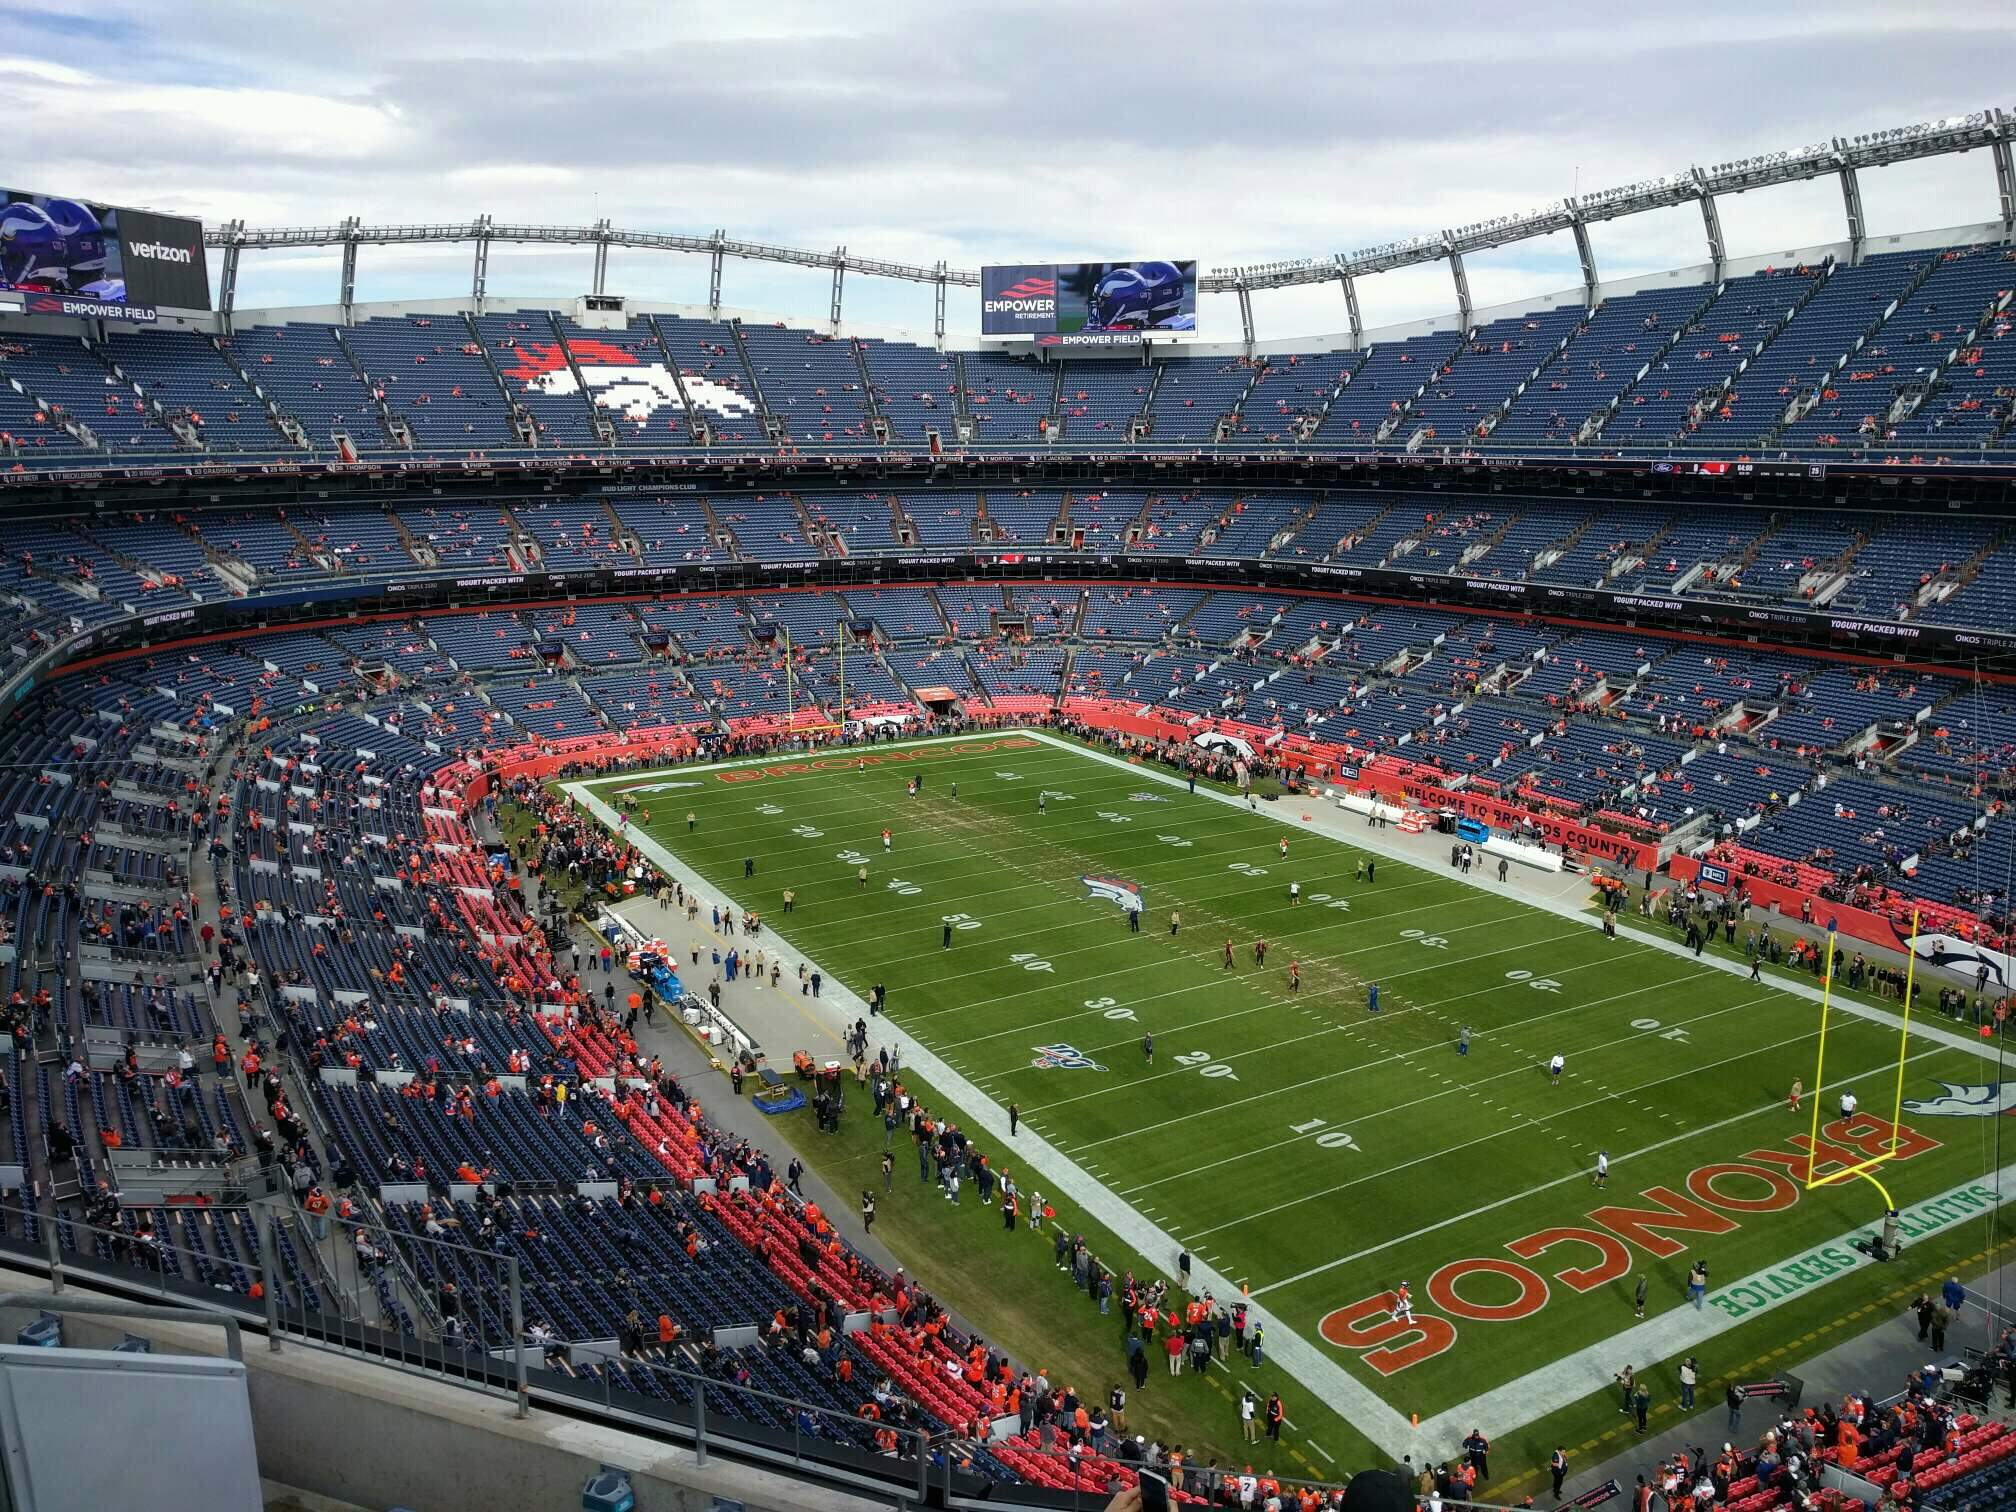 Empower Field at Mile High Stadium Section 500 Row 6